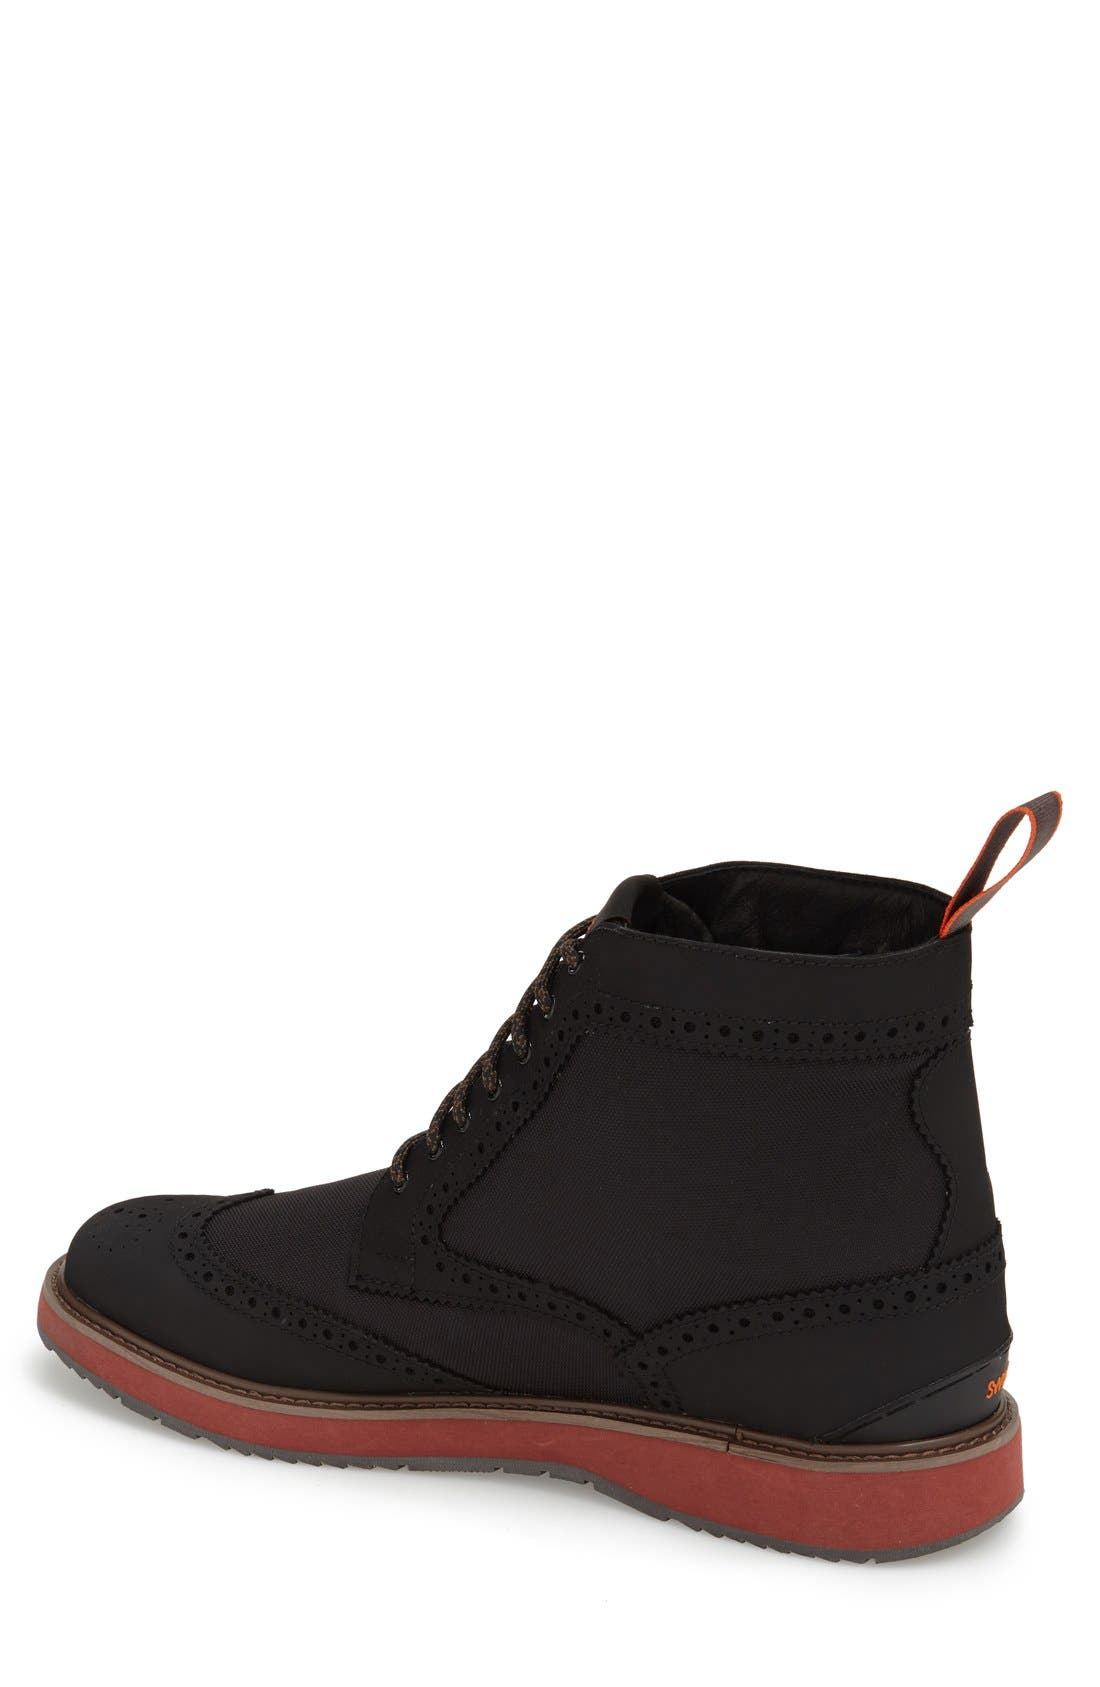 'Barry' Wingtip Boot,                             Alternate thumbnail 3, color,                             001